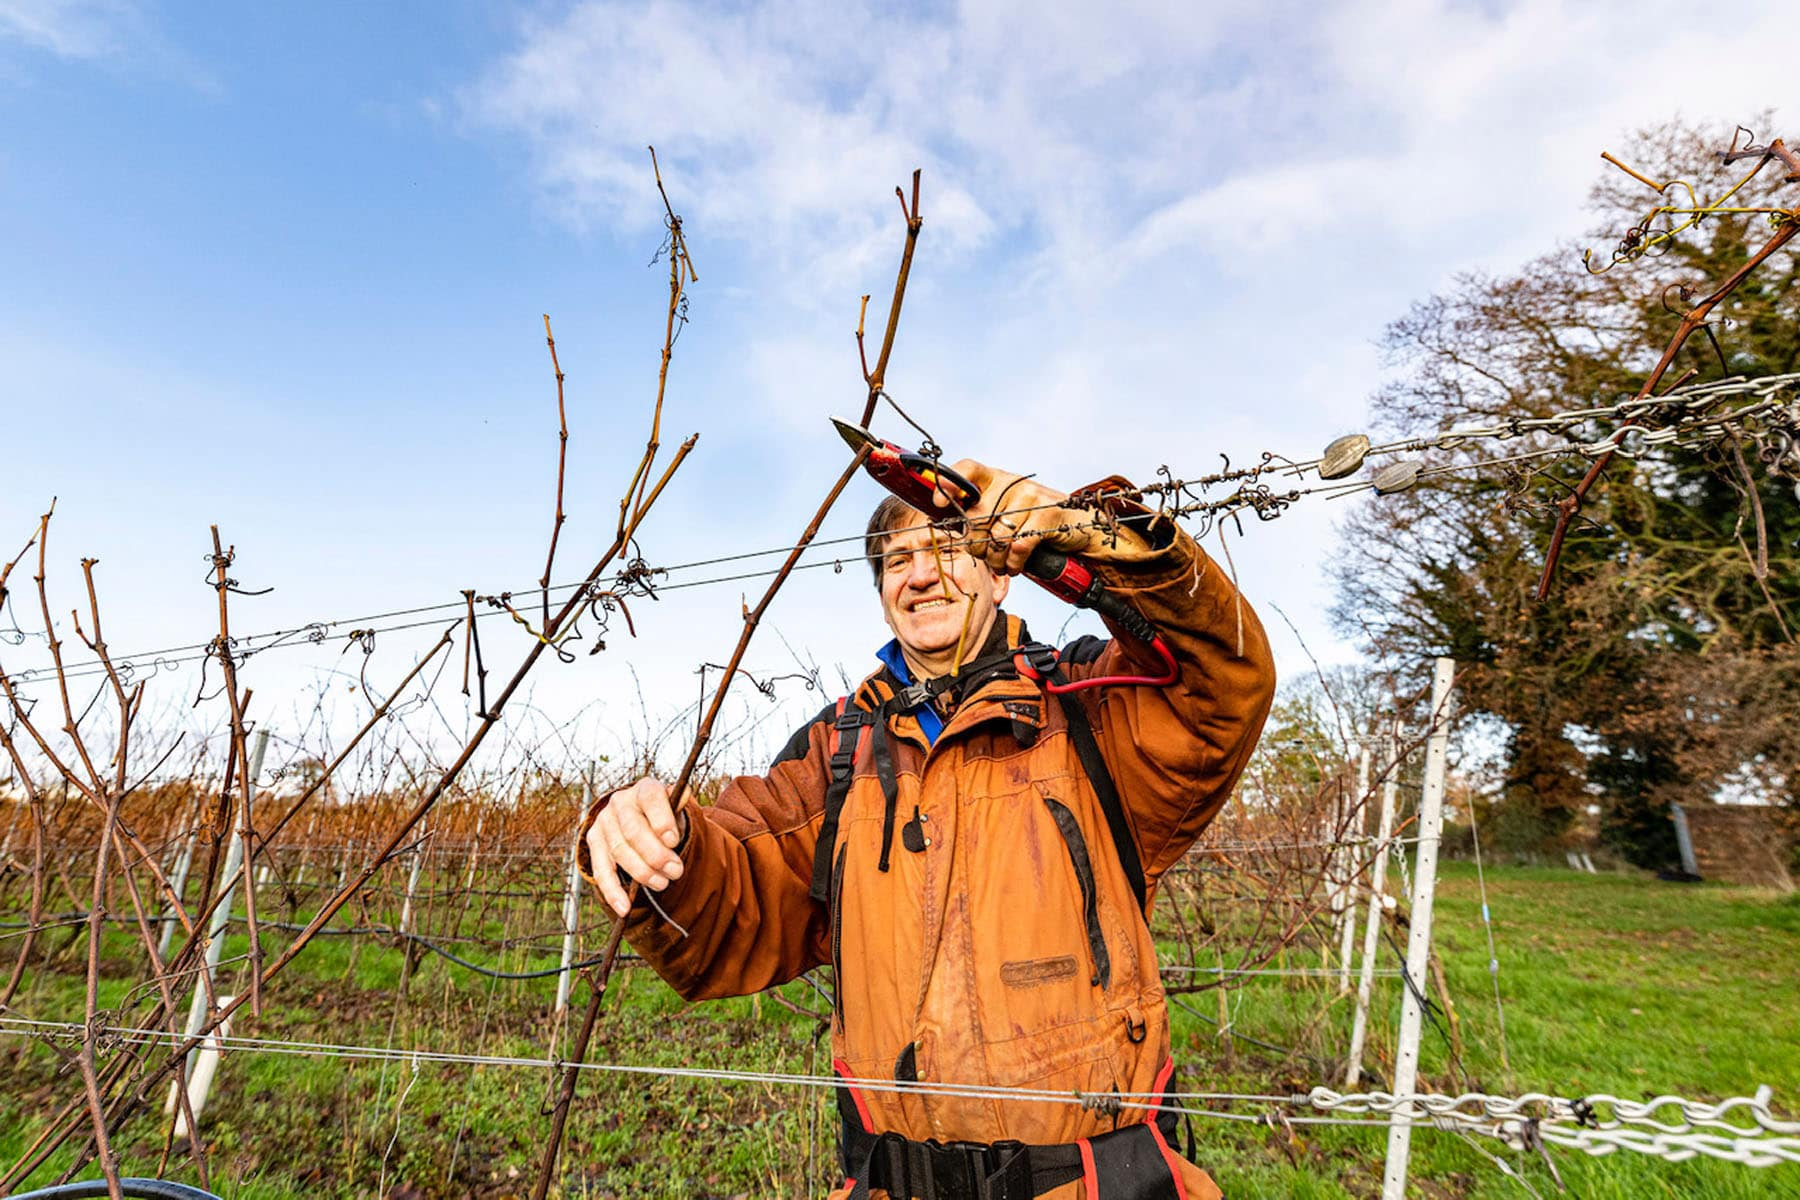 A picture of one of the Chet Valley Vineyard owners cutting twigs in the vineyard.